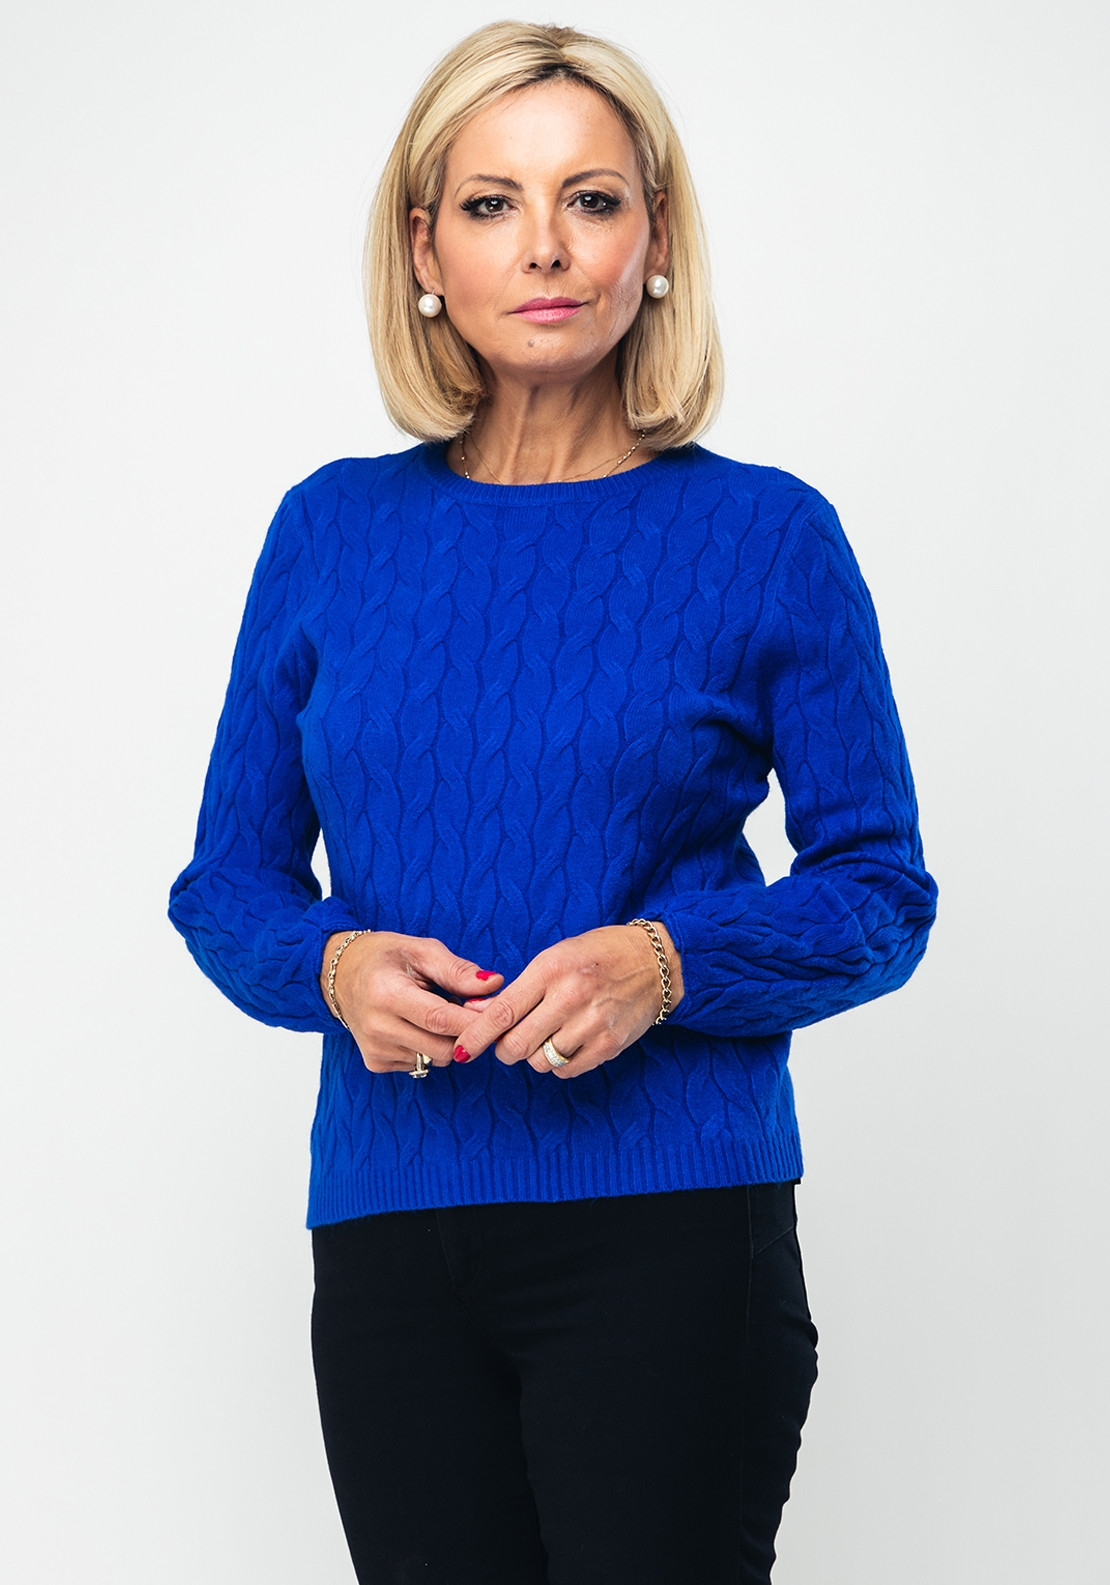 high fashion wide selection of designs wide selection of colors d.e.c.k. by Decollage Cable Knit Jumper, Royal Blue